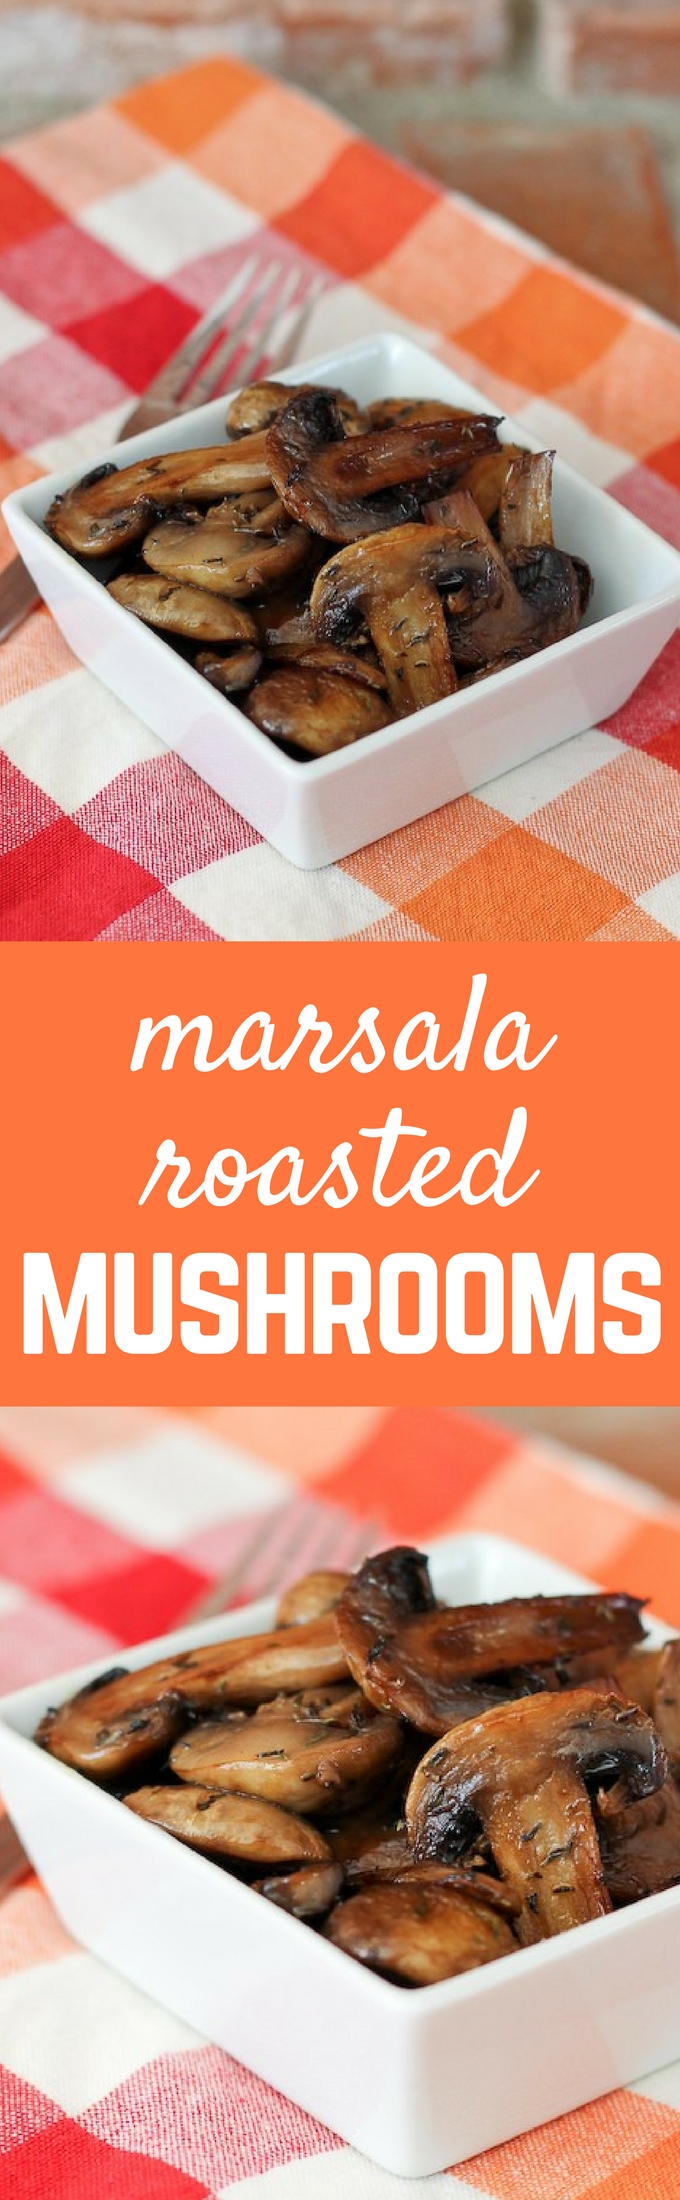 With all the great flavor of marsala, these marsala roasted mushrooms are the perfect side dish to nearly any meal! Get the easy recipe on RachelCooks.com!